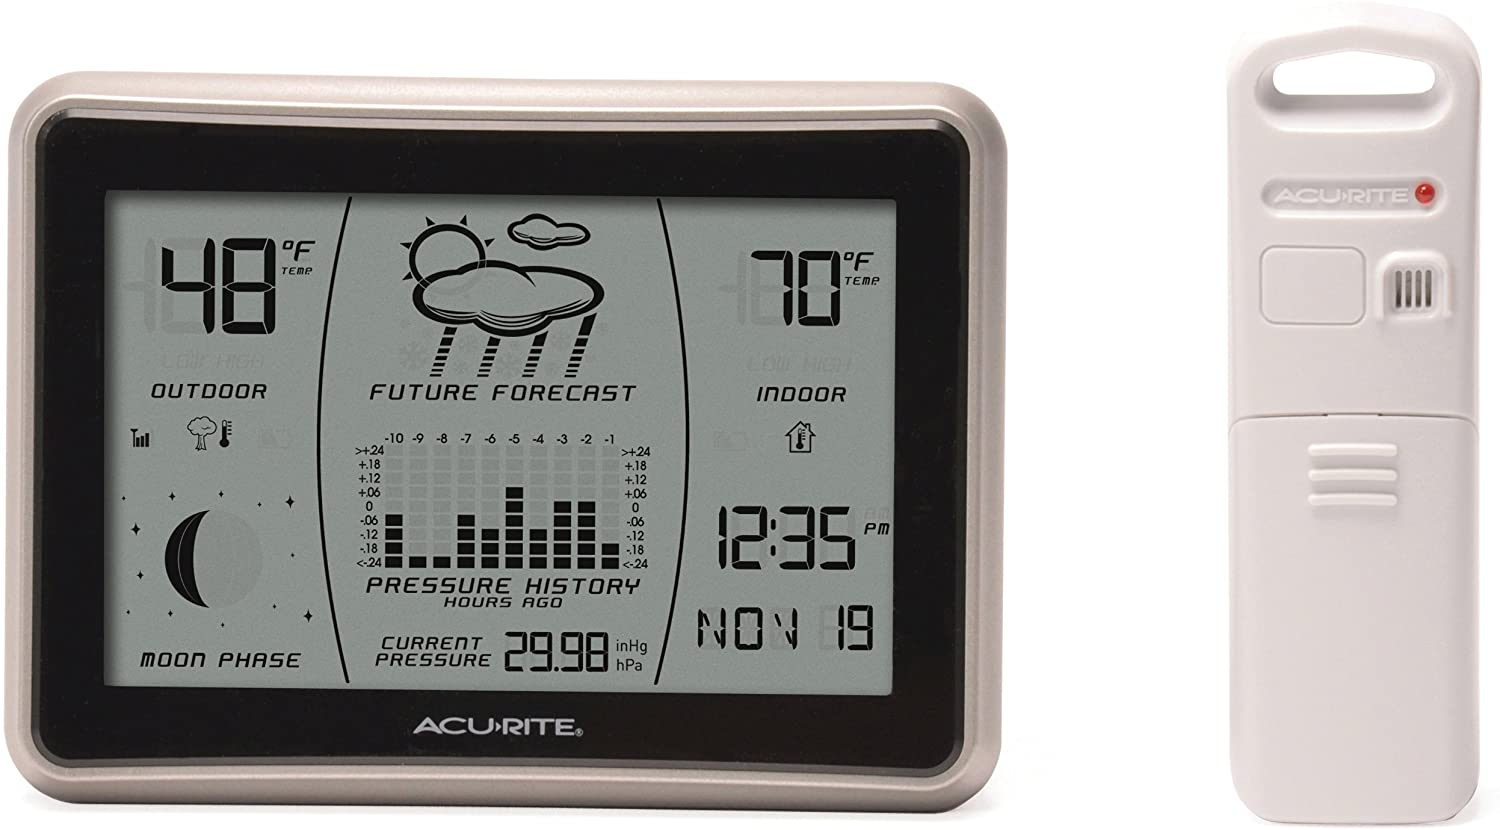 AcuRite Wireless Weather Forecaster with Intelli-Time, Gray with Silver Bezel